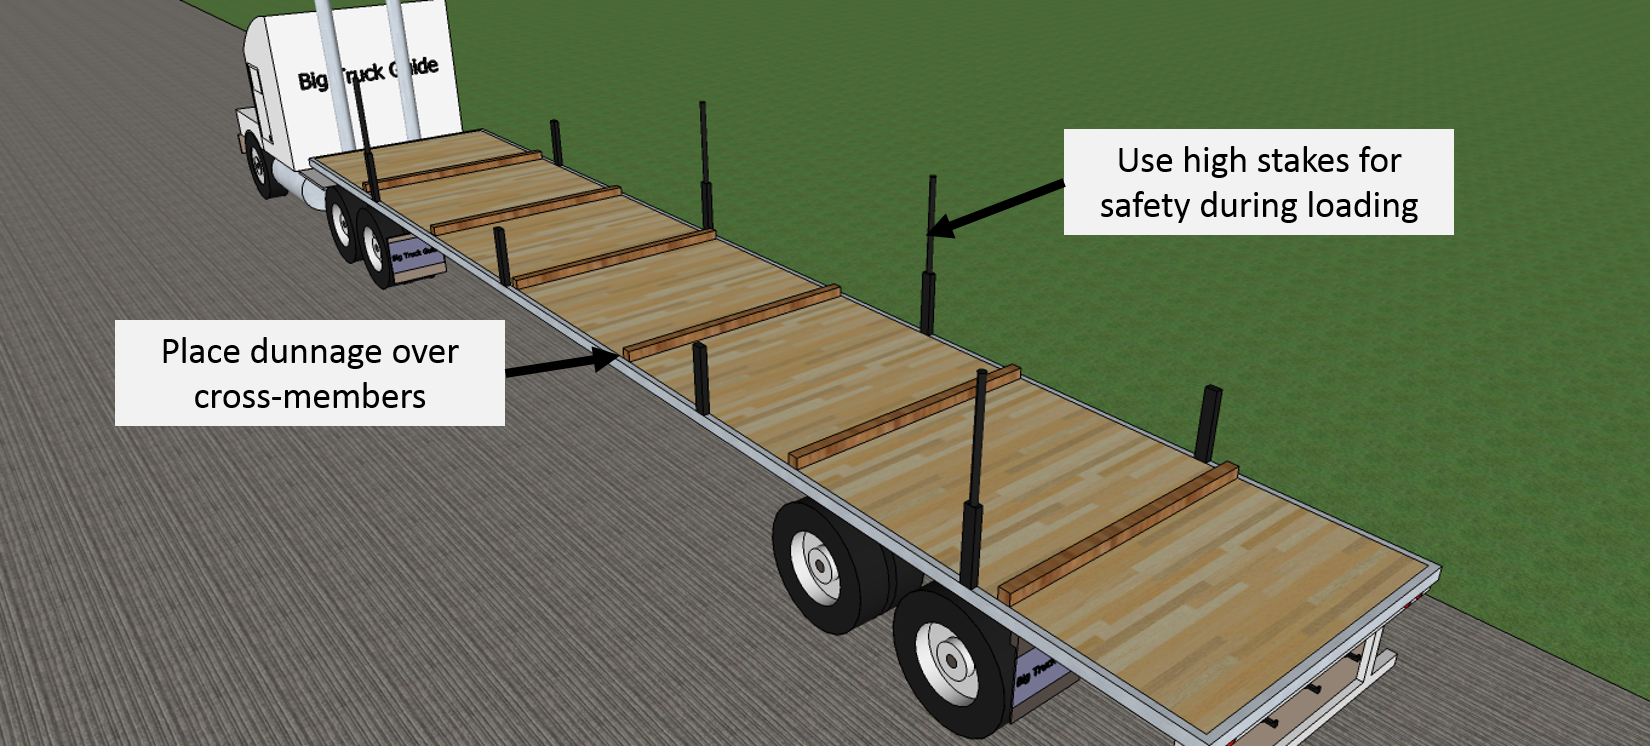 Make A Trailer From A Truck Bed